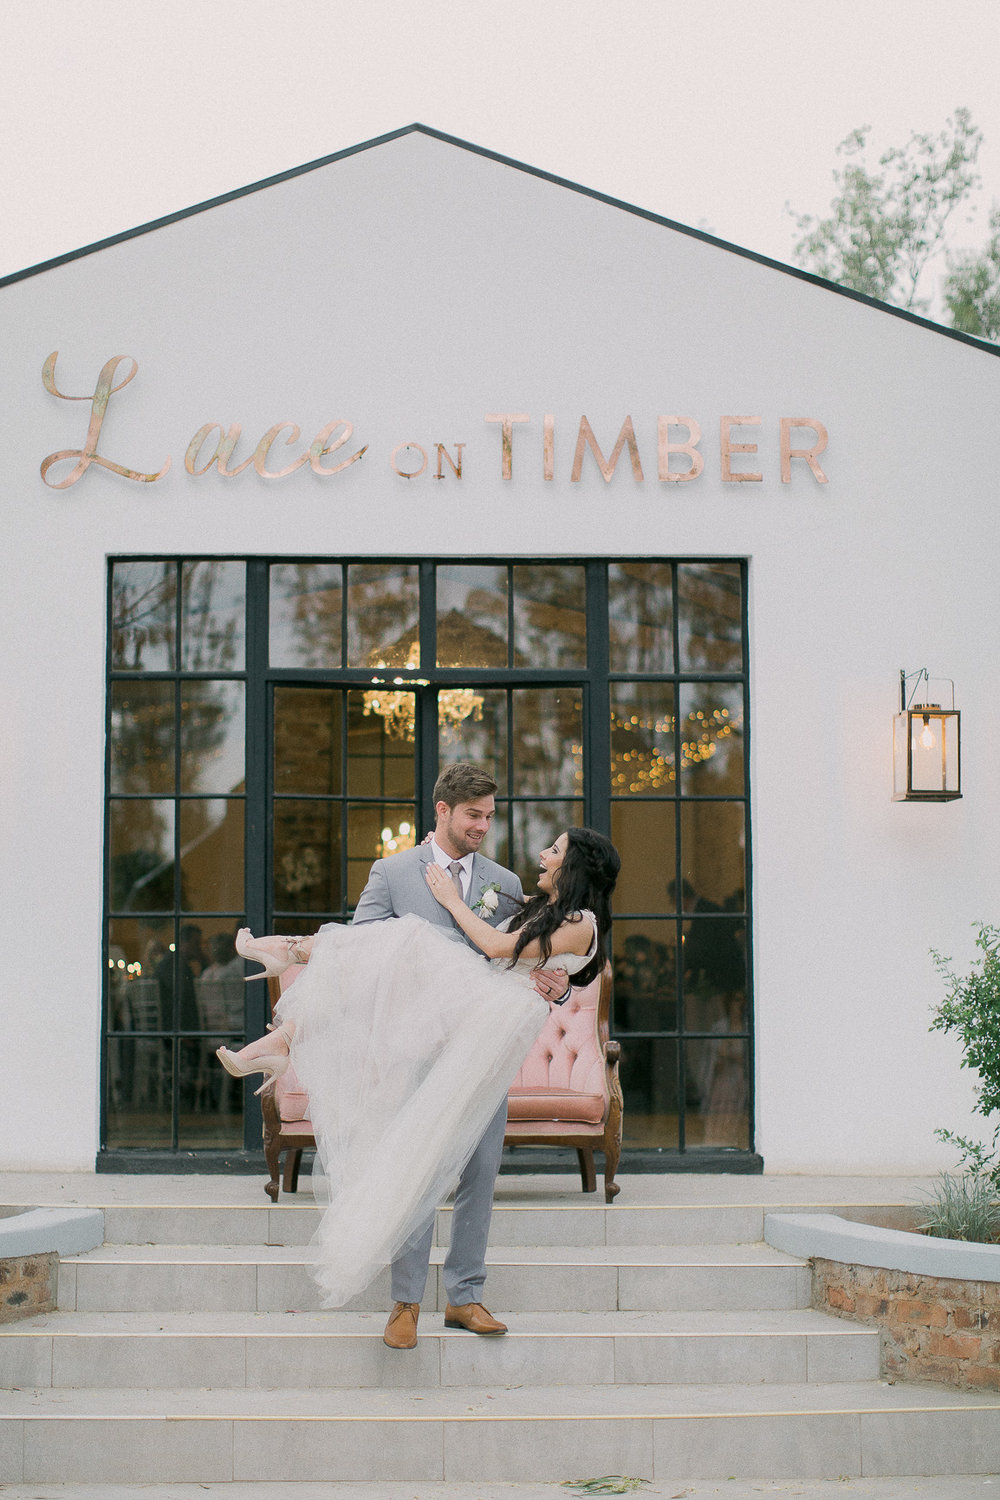 Justin & Robyn - Lace on timber WEDDING